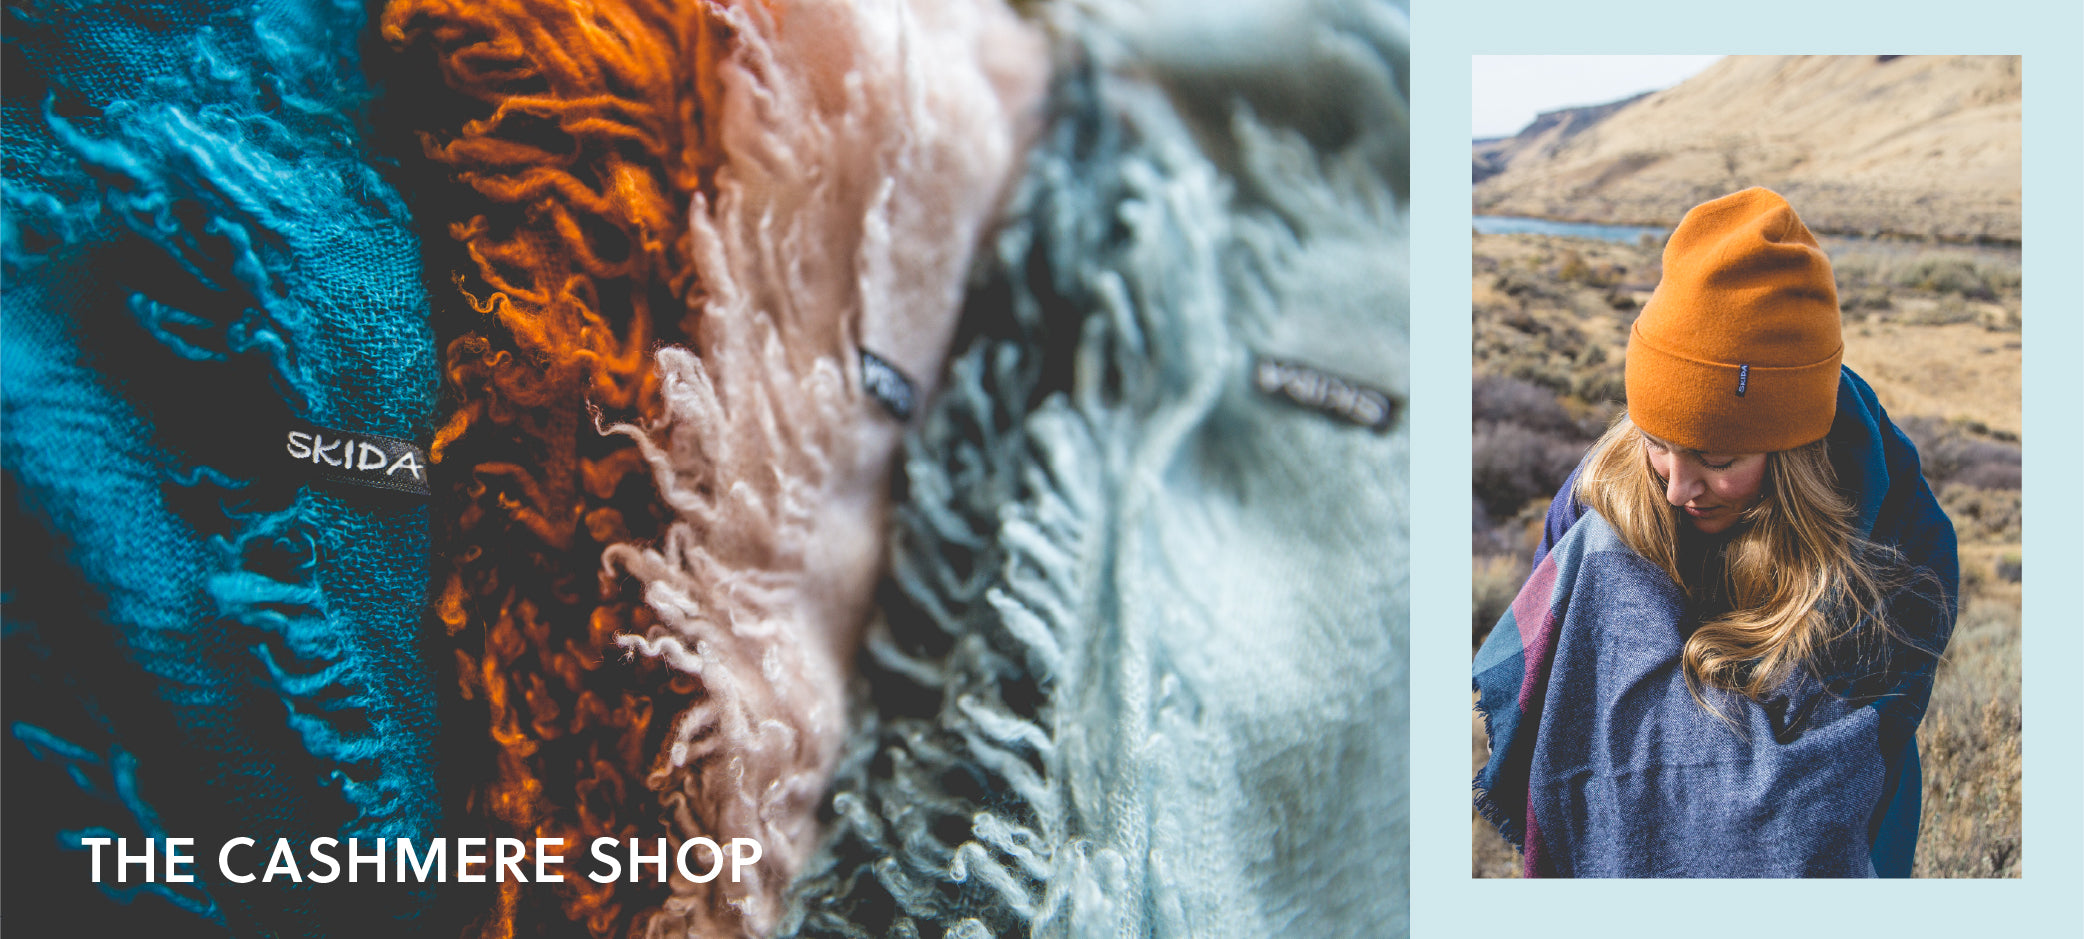 Skida | The Cashmere Shop